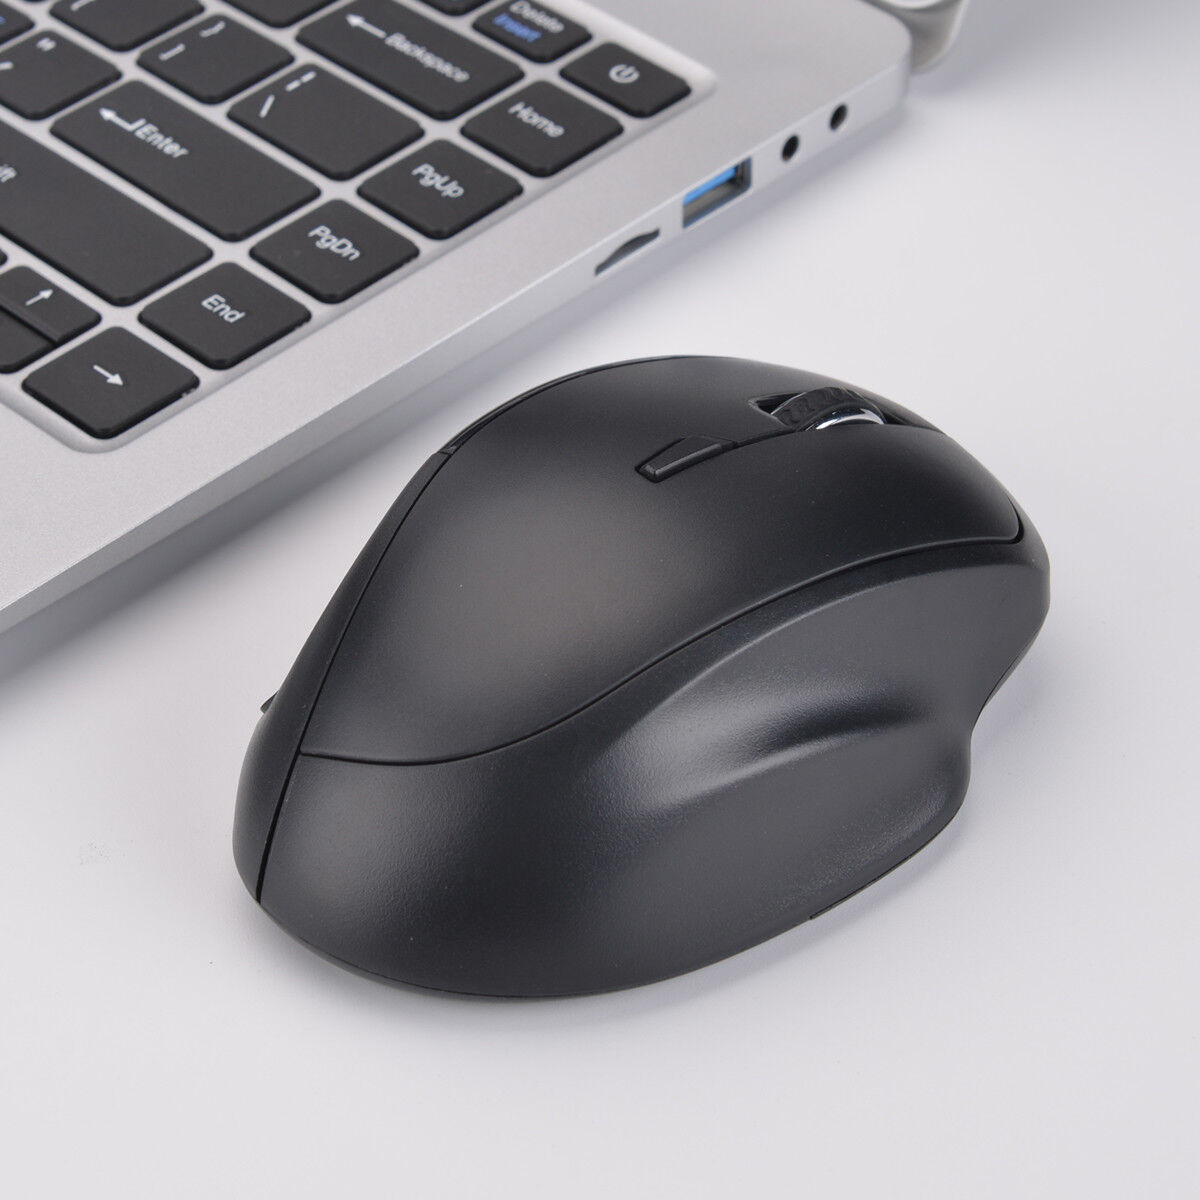 2.4GHz Wireless Gaming Mouse With USB Receiver For PC Laptop